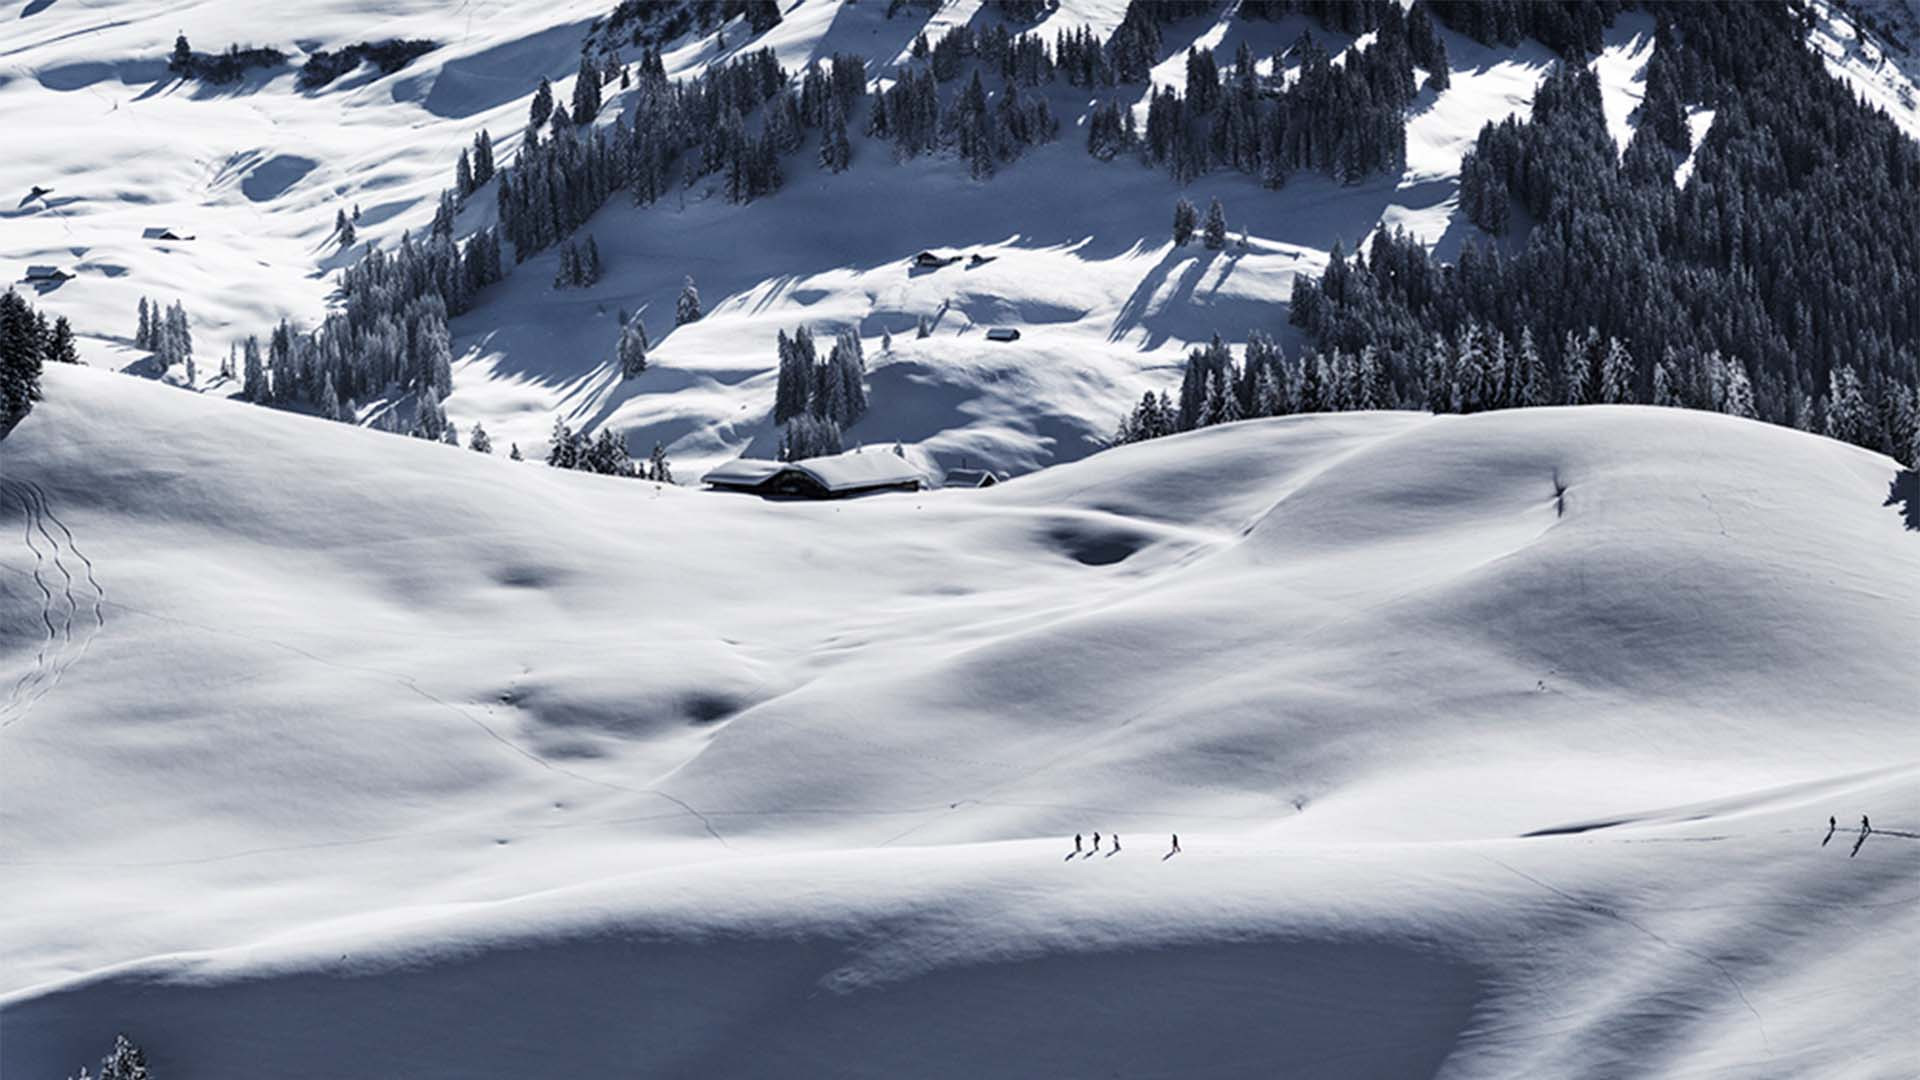 Hikers in Parwengesattel, Switzerland